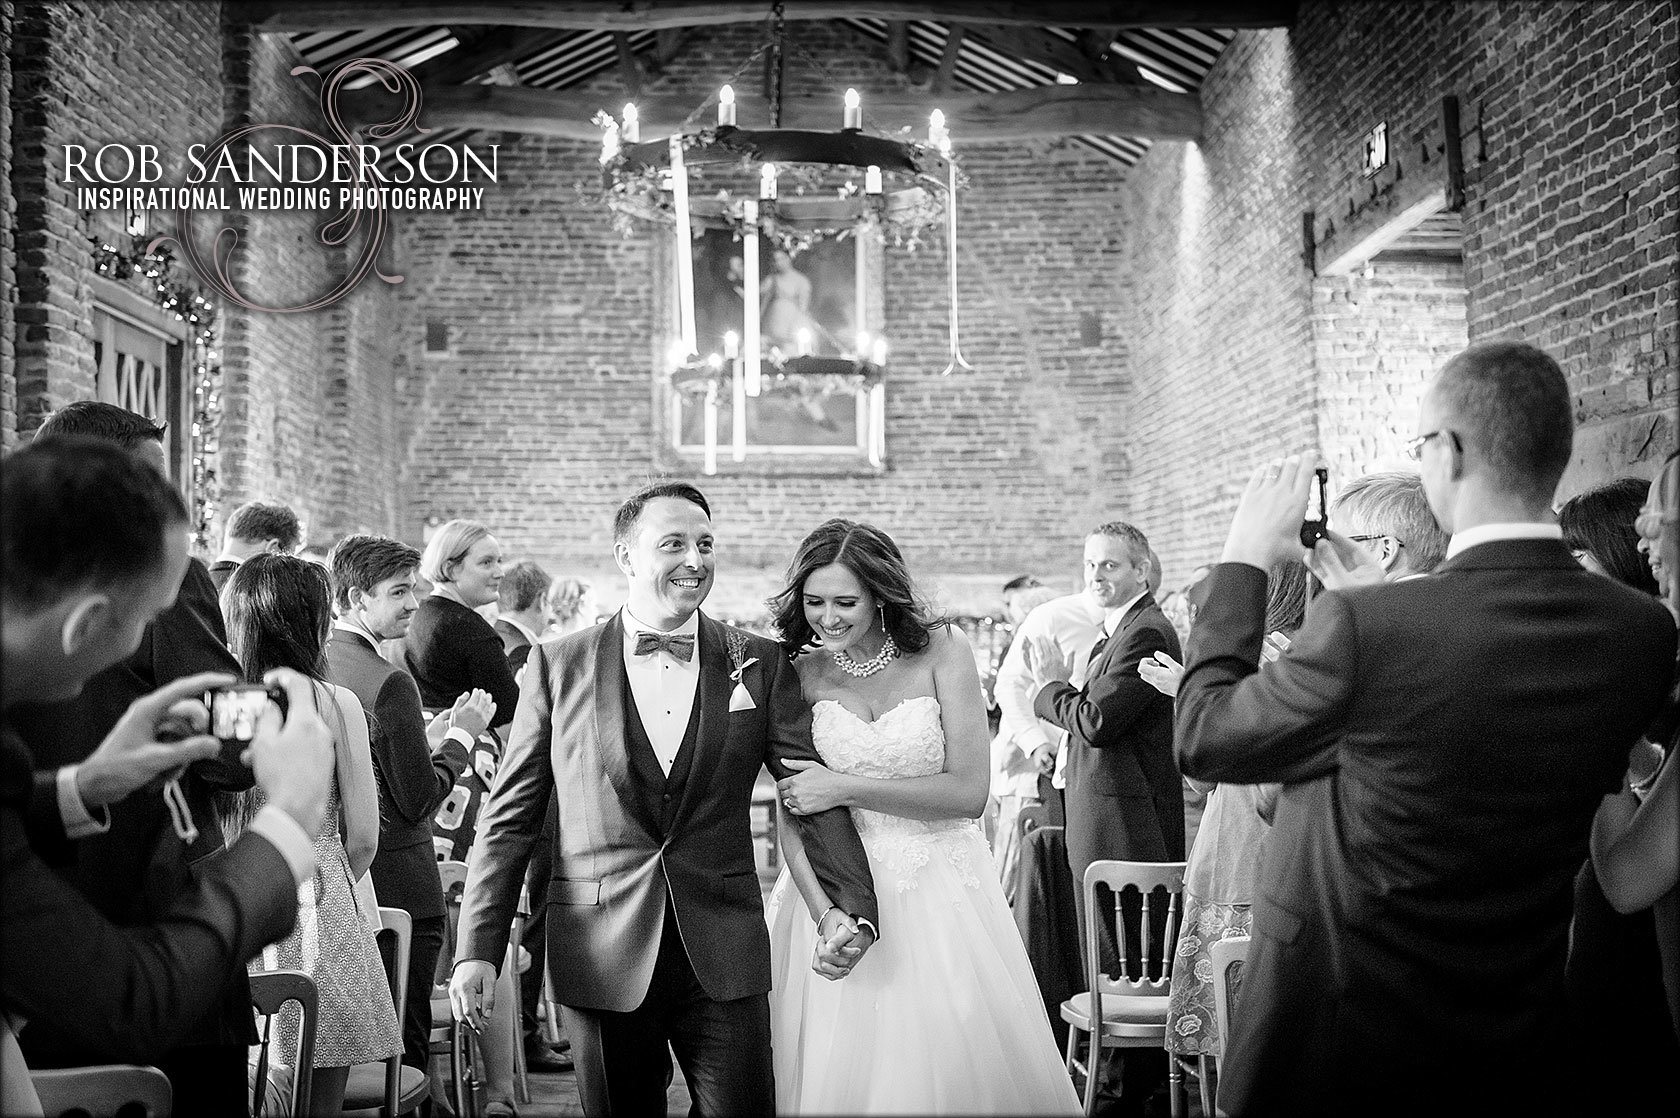 married couple walk back down the aisle Meols hall laughing